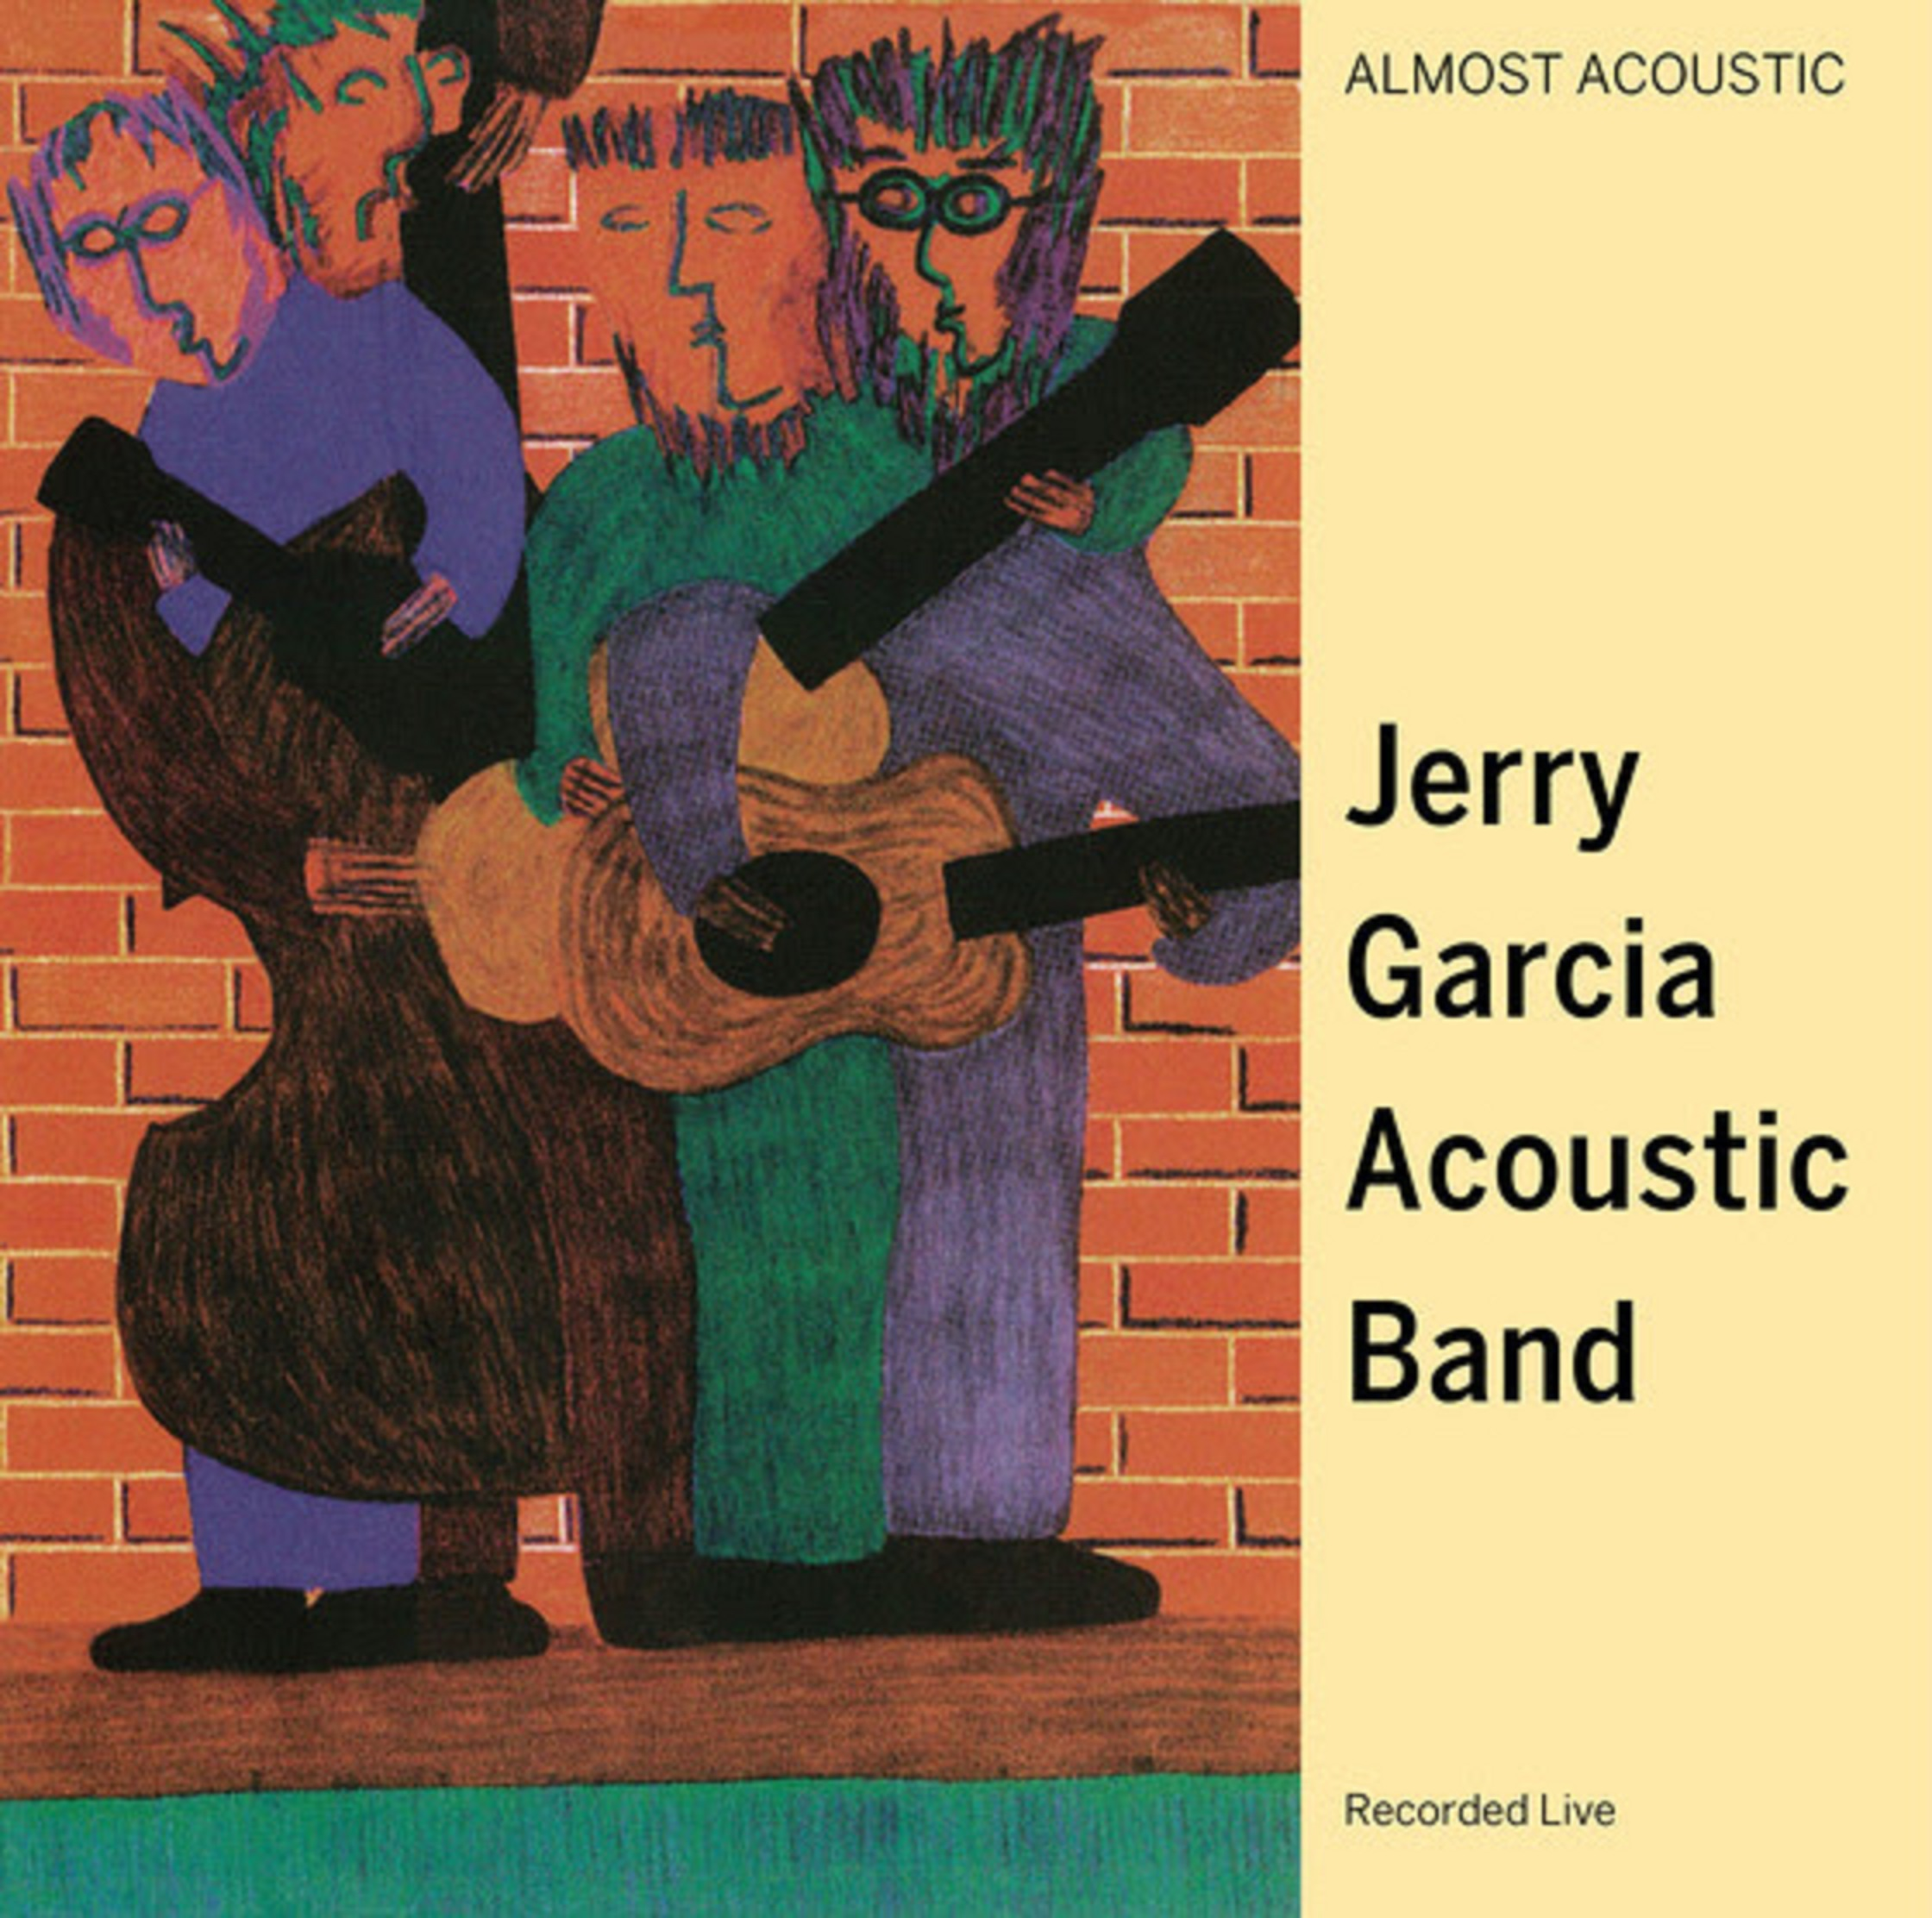 30th Anniversary Reissue Of Jerry Garcia Acoustic Band's ALMOST ACOUSTIC